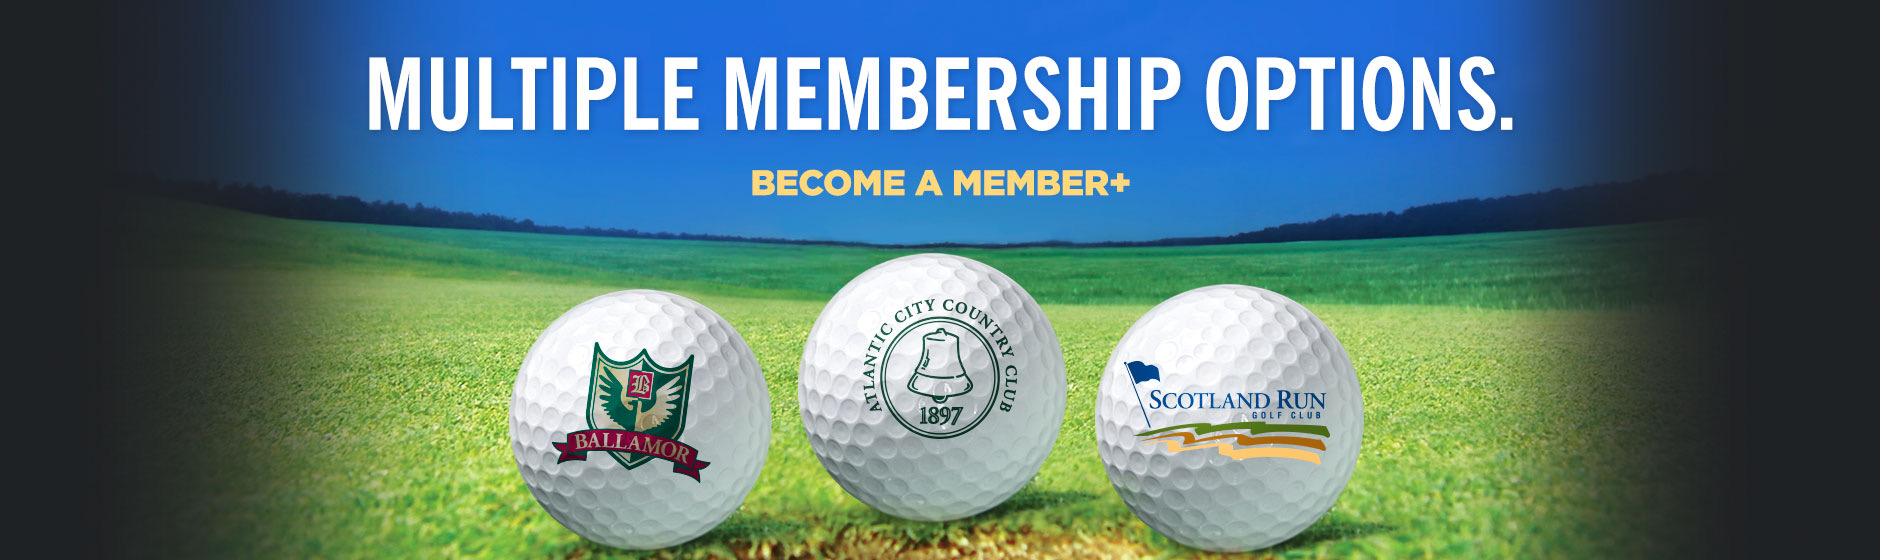 Ottinger Memberships